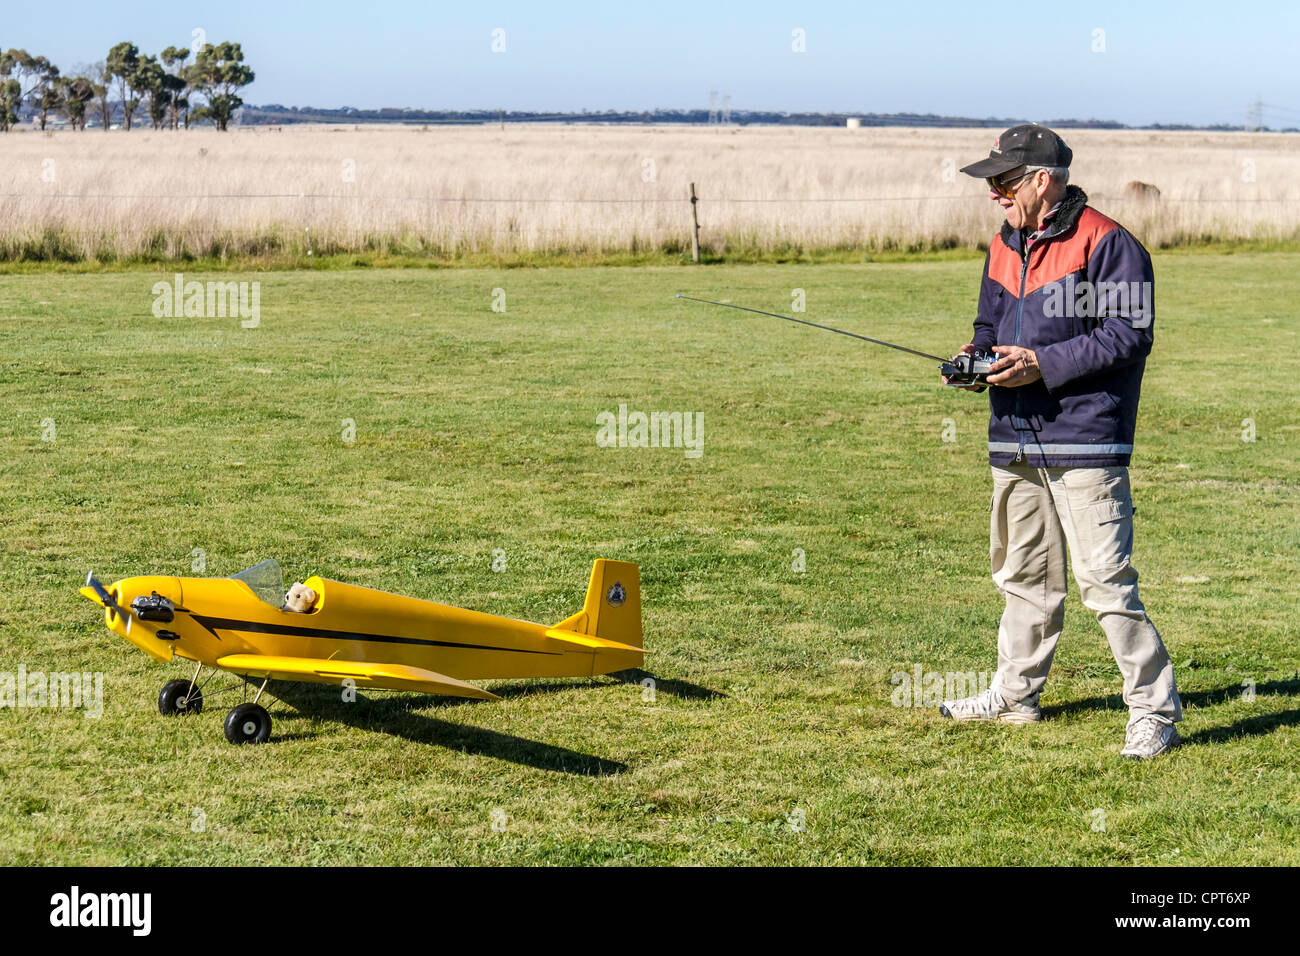 Man about to take off Radio Control RC airplane flying hobby Stock